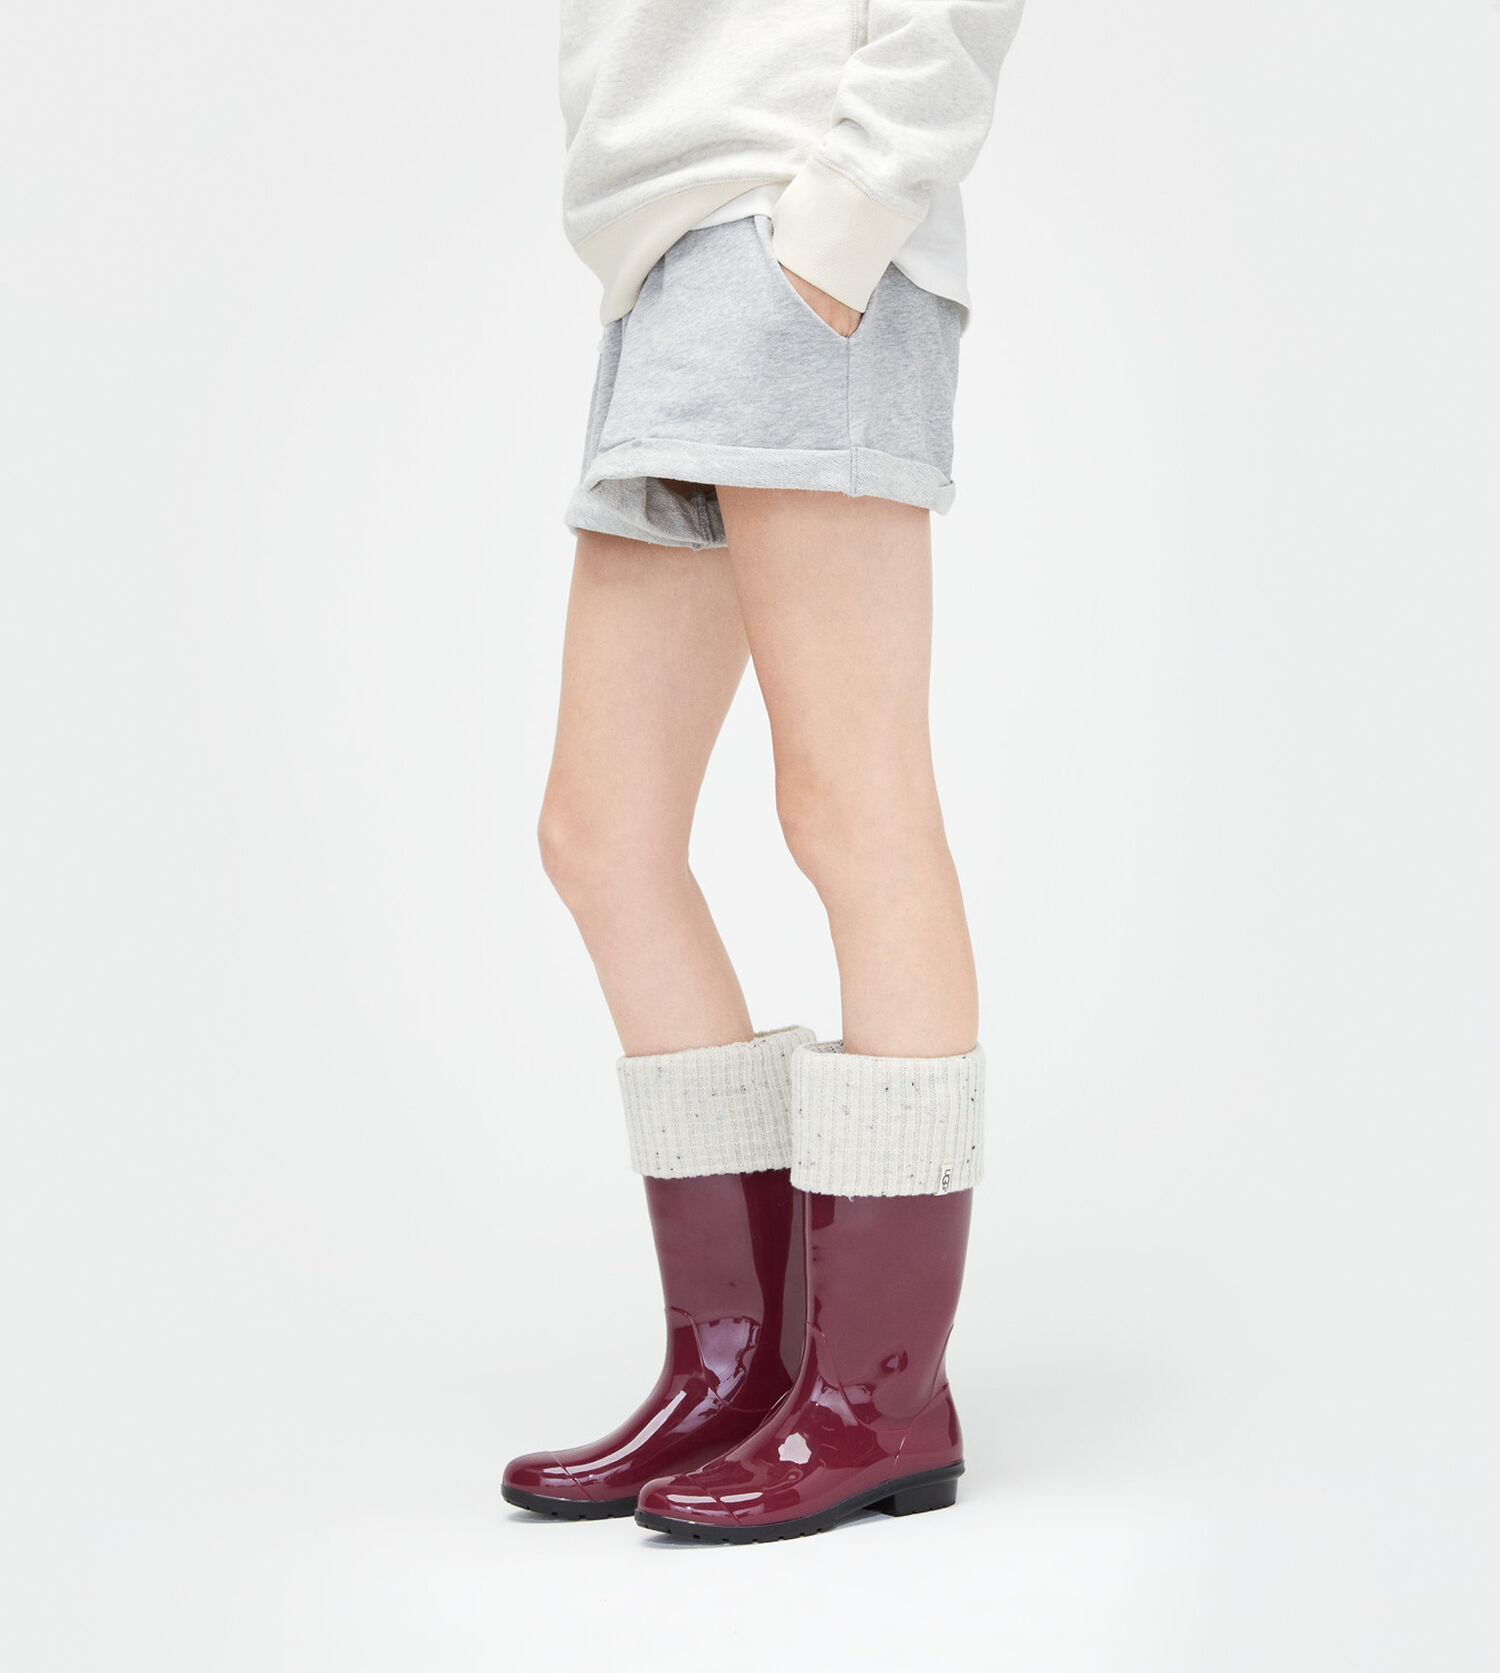 9d416f571c1 Women's Share this product Shaye Tall Rainboot Sock